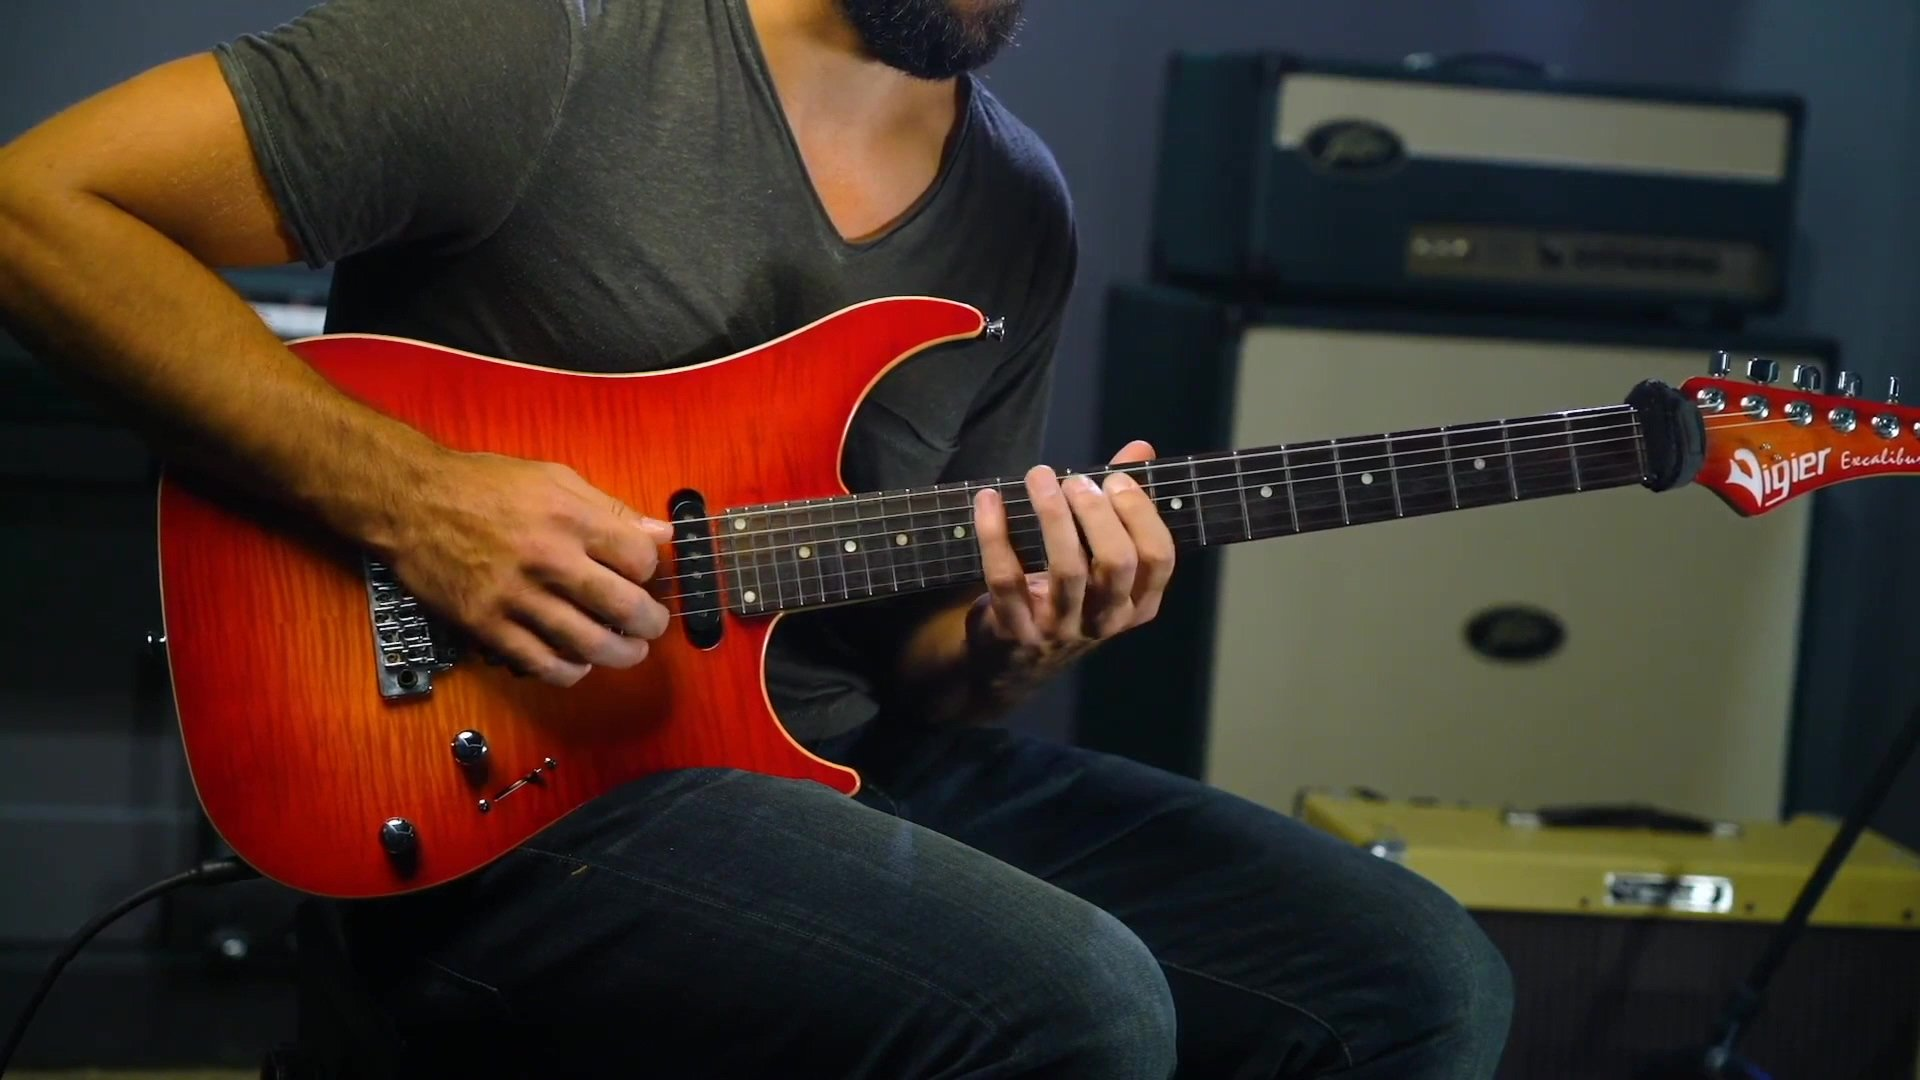 Things I Wish I Knew Before Learning to Play the Guitar